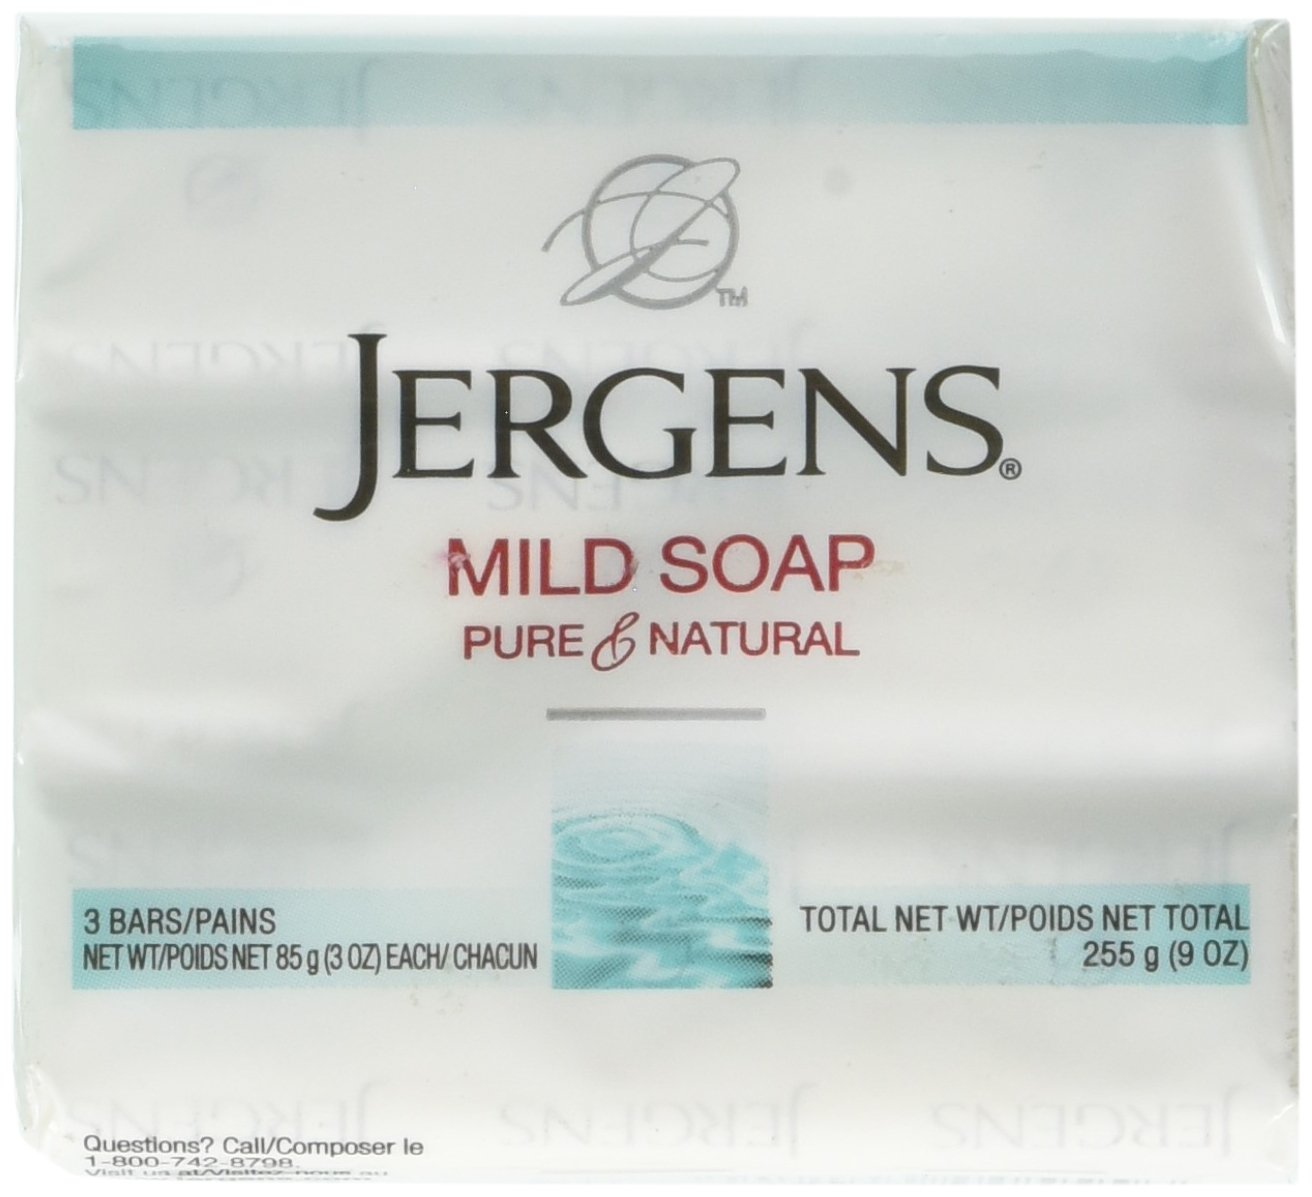 Jergens Mild Soap for Face and Body, 3 Ounce Bar, 3 Count (Pack of 4) KAO Brands